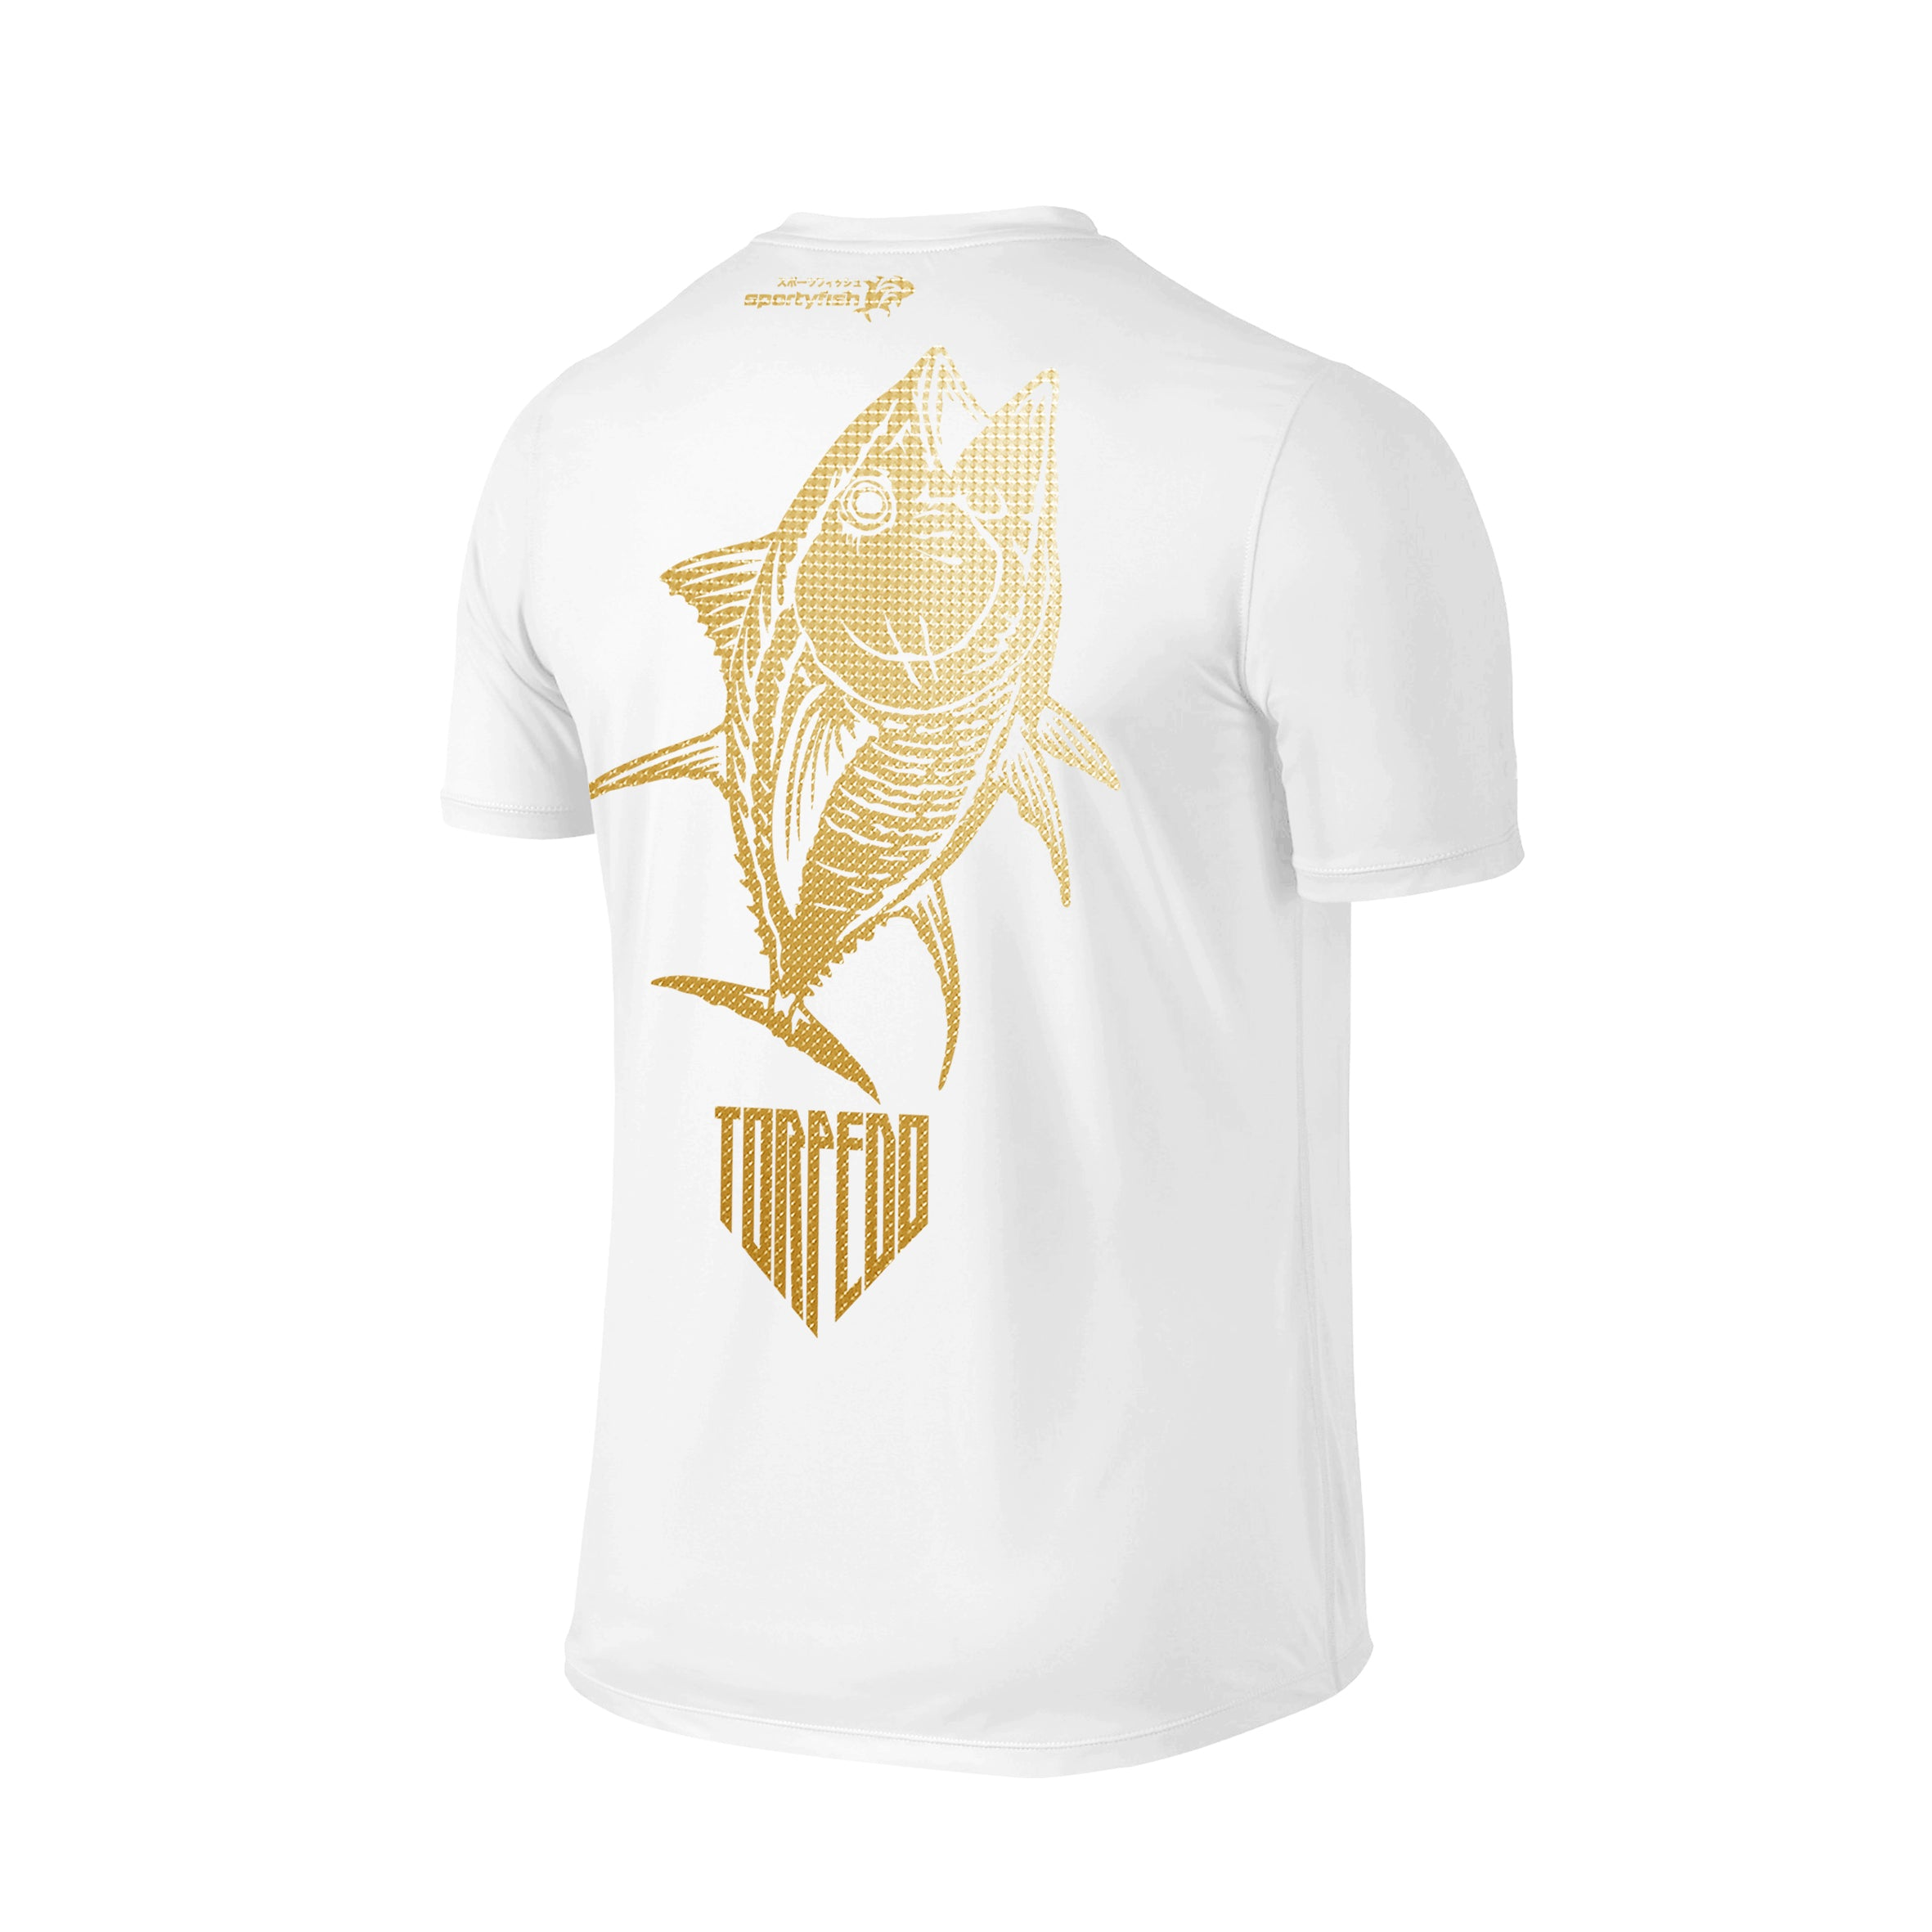 SportyFish Shield Series Classic White T-shirt(back view) Gold Print: Yellowfin Tuna